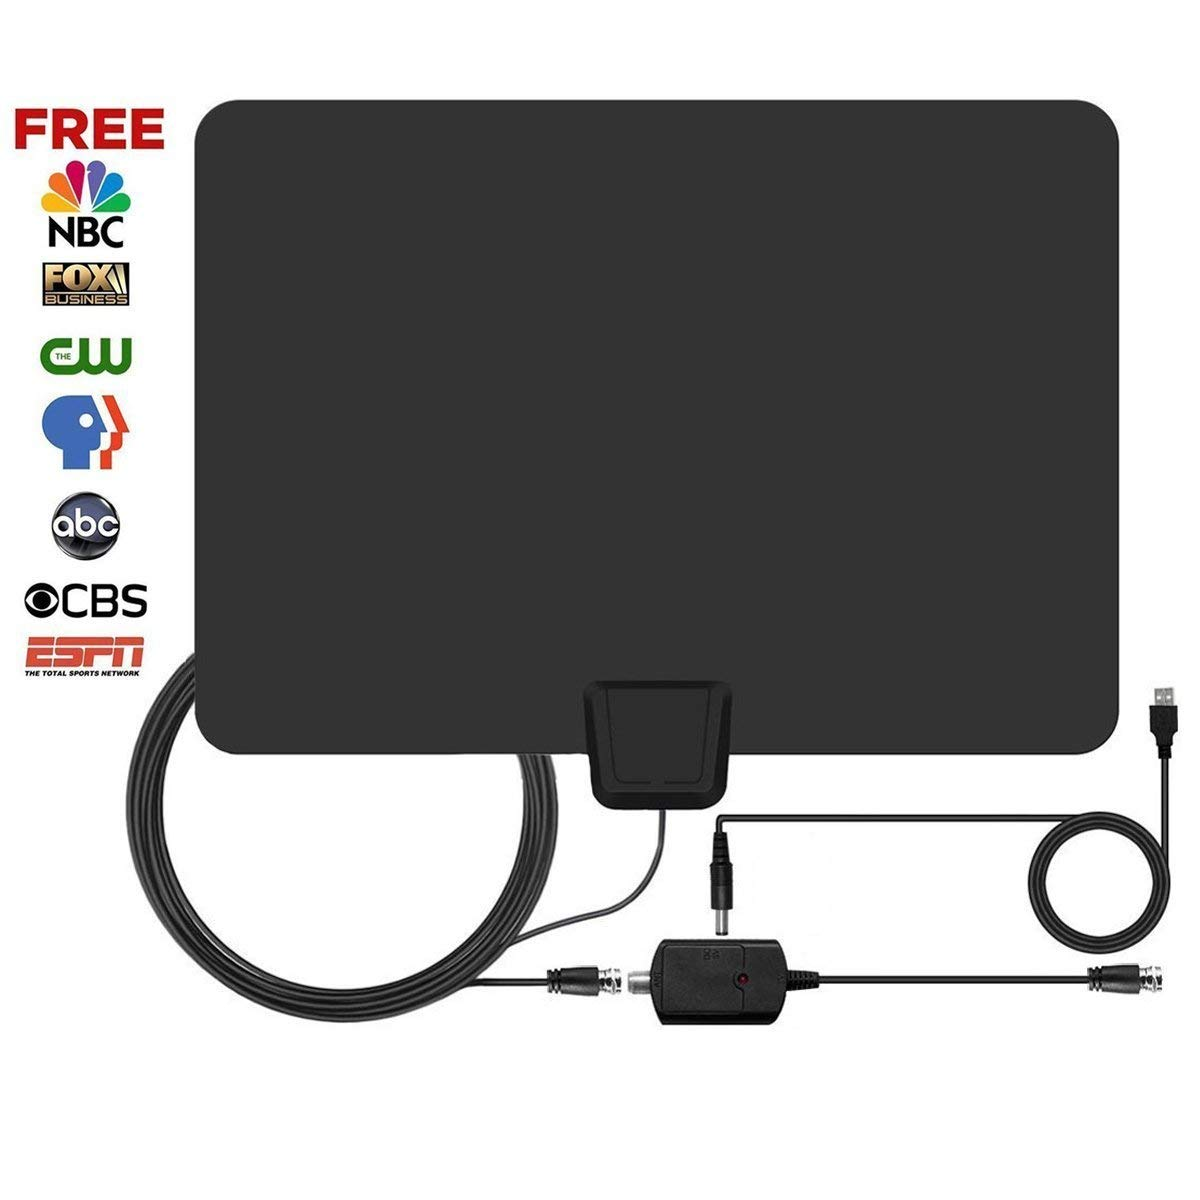 2018 New Version 50-80 Miles Long Range TV 2018 New Version Antenna - TV 2018 NEWEST VERSION Digital TV Antenna with Detachable Amplifier Signal Booster for 1080P